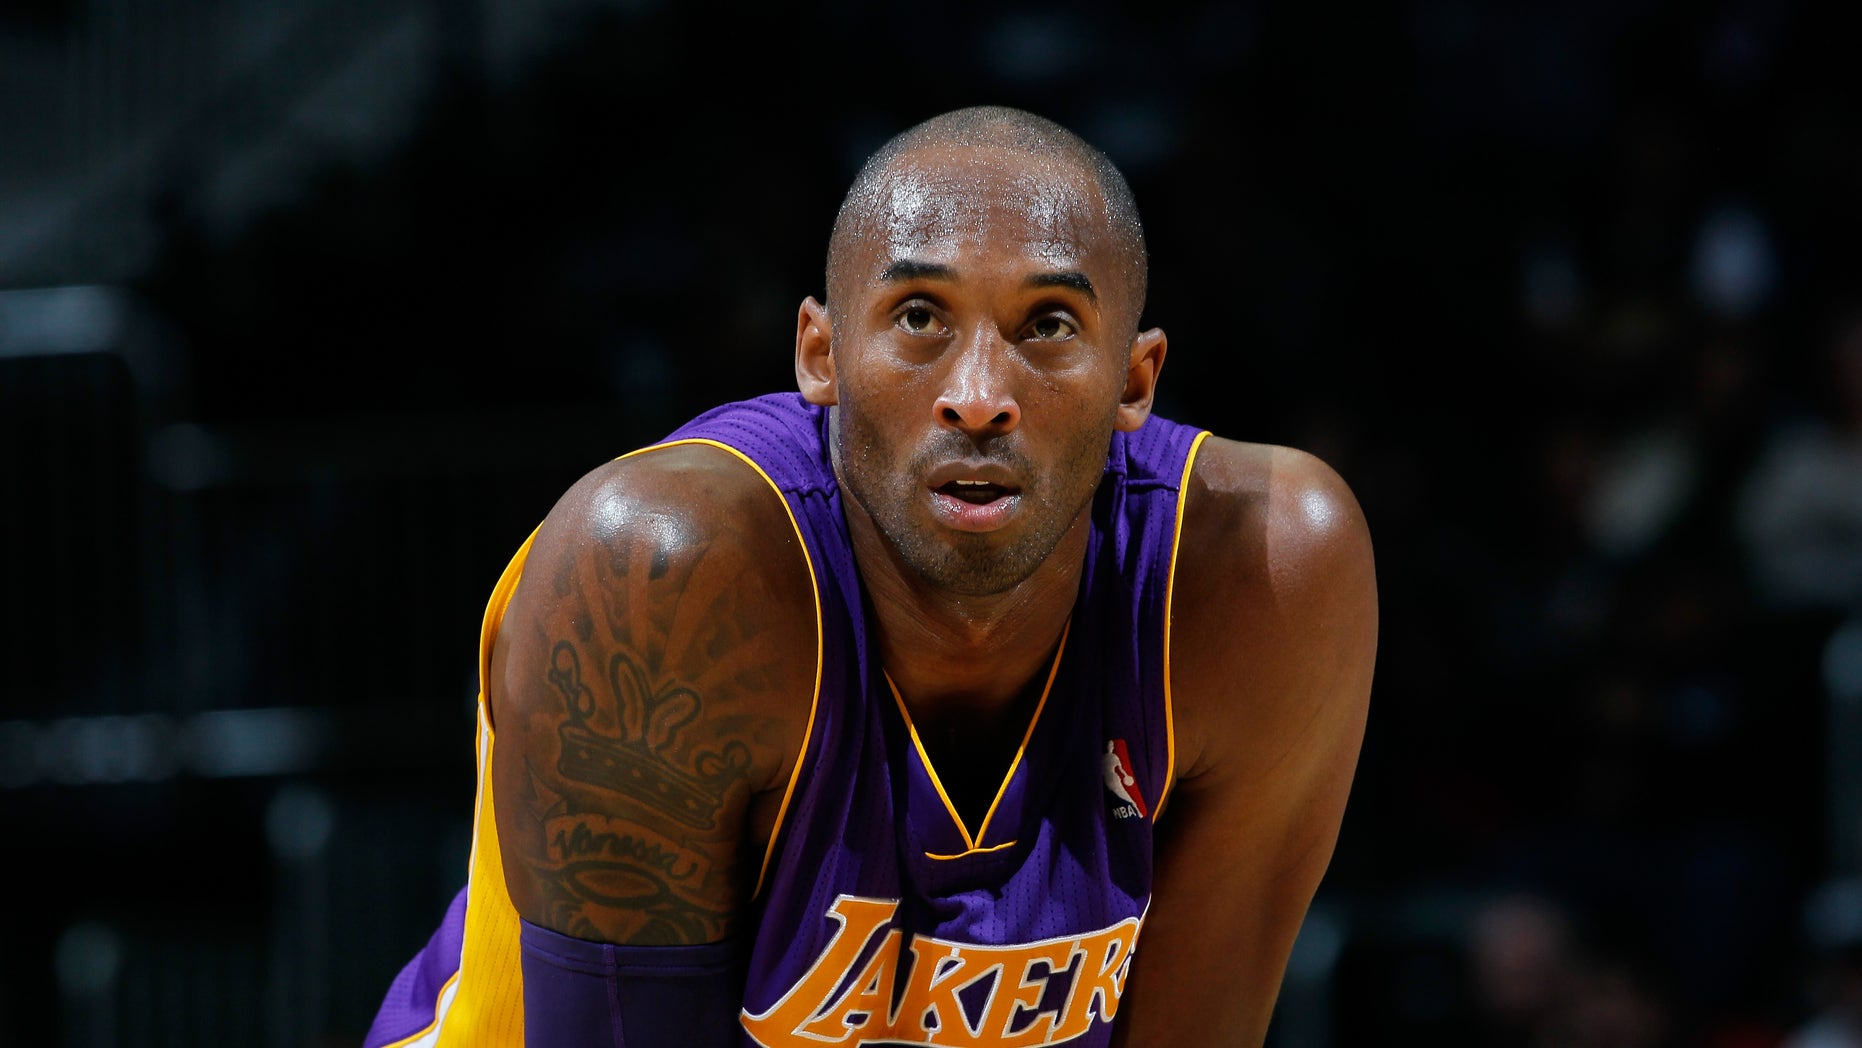 ATLANTA, GA - DECEMBER 16:  Kobe Bryant #24 of the Los Angeles Lakers stands during a free throw against the Atlanta Hawks at Philips Arena on December 16, 2013 in Atlanta, Georgia.  NOTE TO USER: User expressly acknowledges and agrees that, by downloading and or using this photograph, User is consenting to the terms and conditions of the Getty Images License Agreement.  (Photo by Kevin C. Cox/Getty Images)